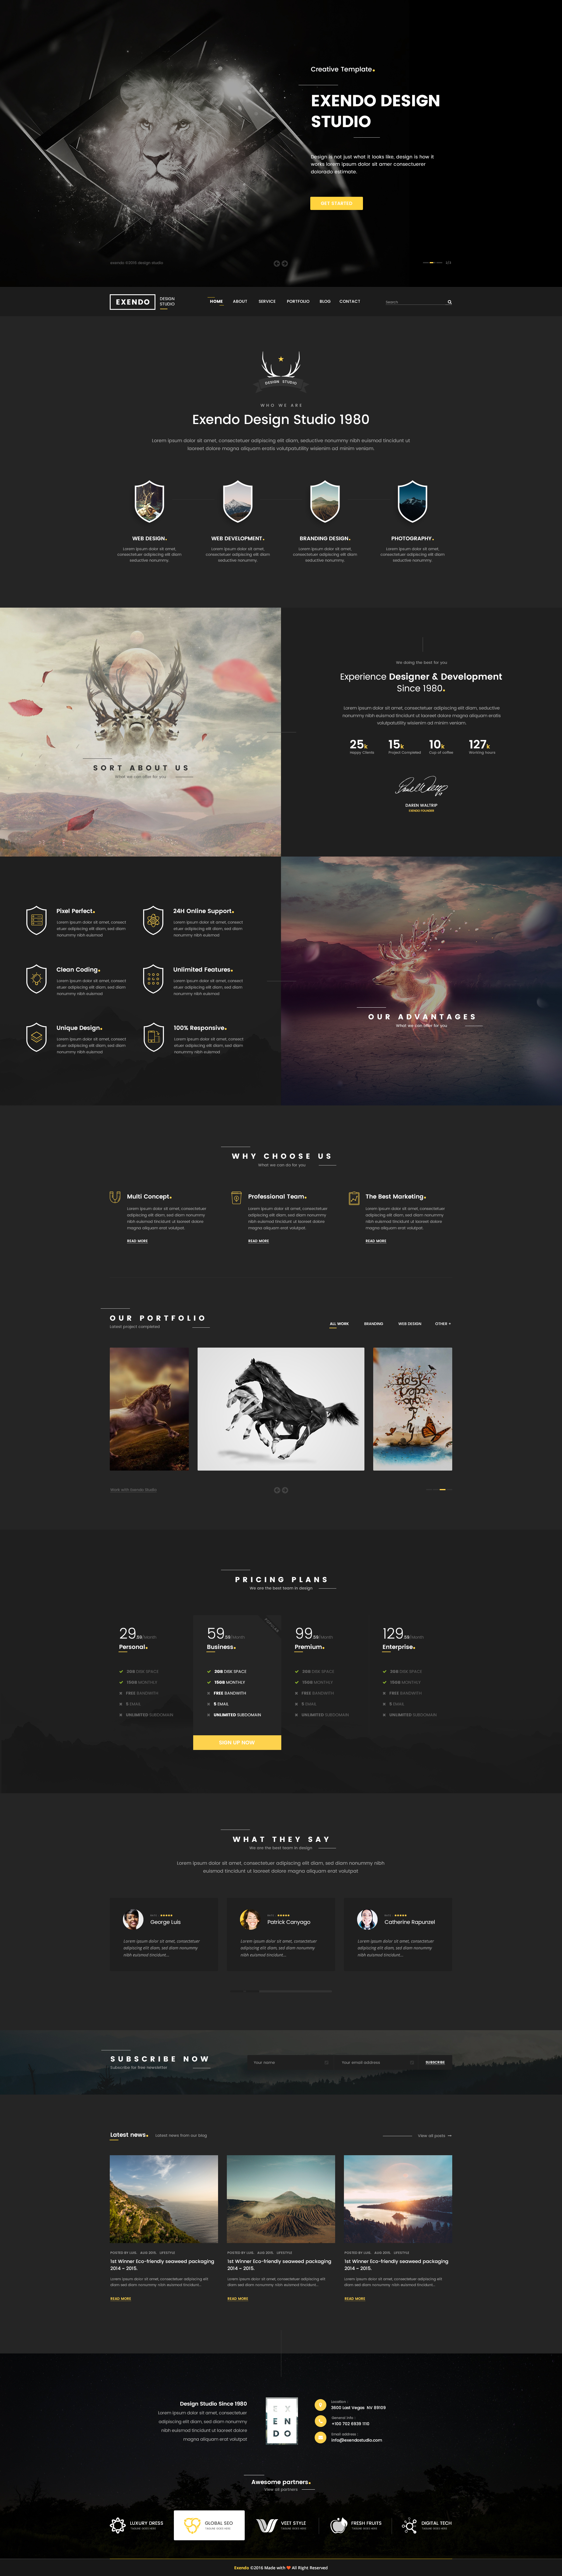 Exendo - Creative PSD Template by Last40 | ThemeForest